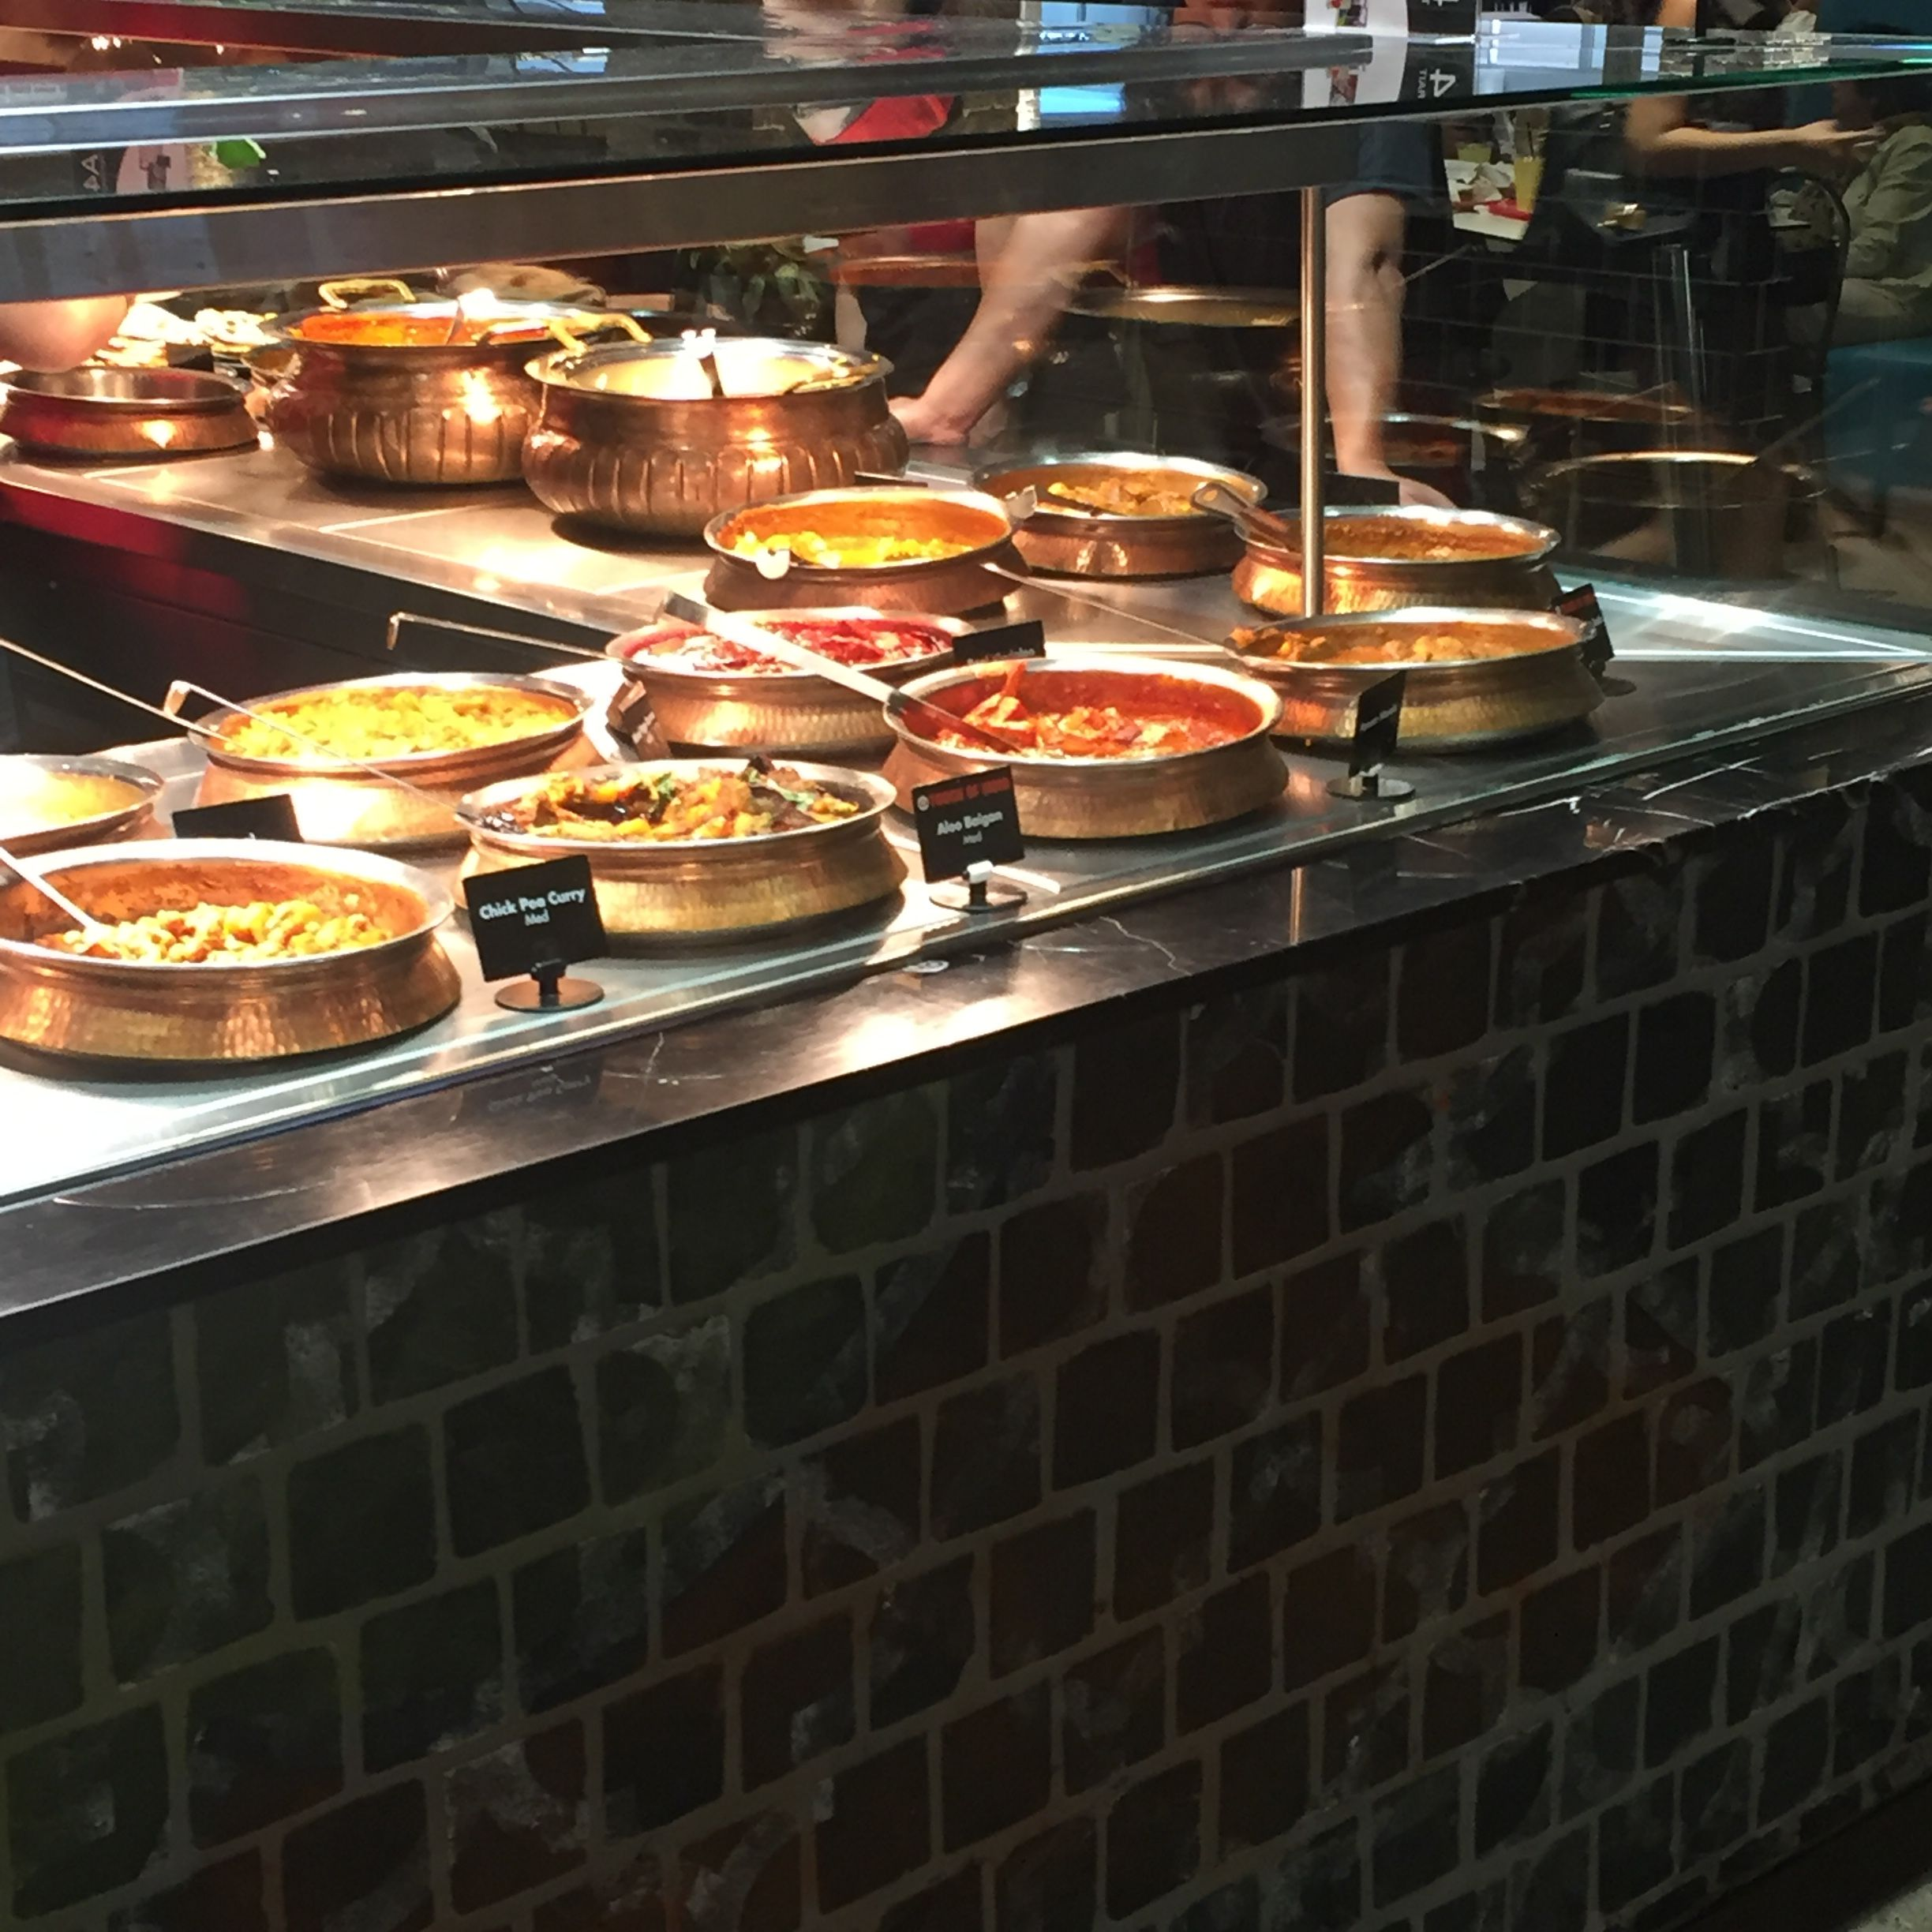 Asian Curry Buffet Display With Images Chinese Buffet Restaurant Hotel Buffet Buffet Restaurant